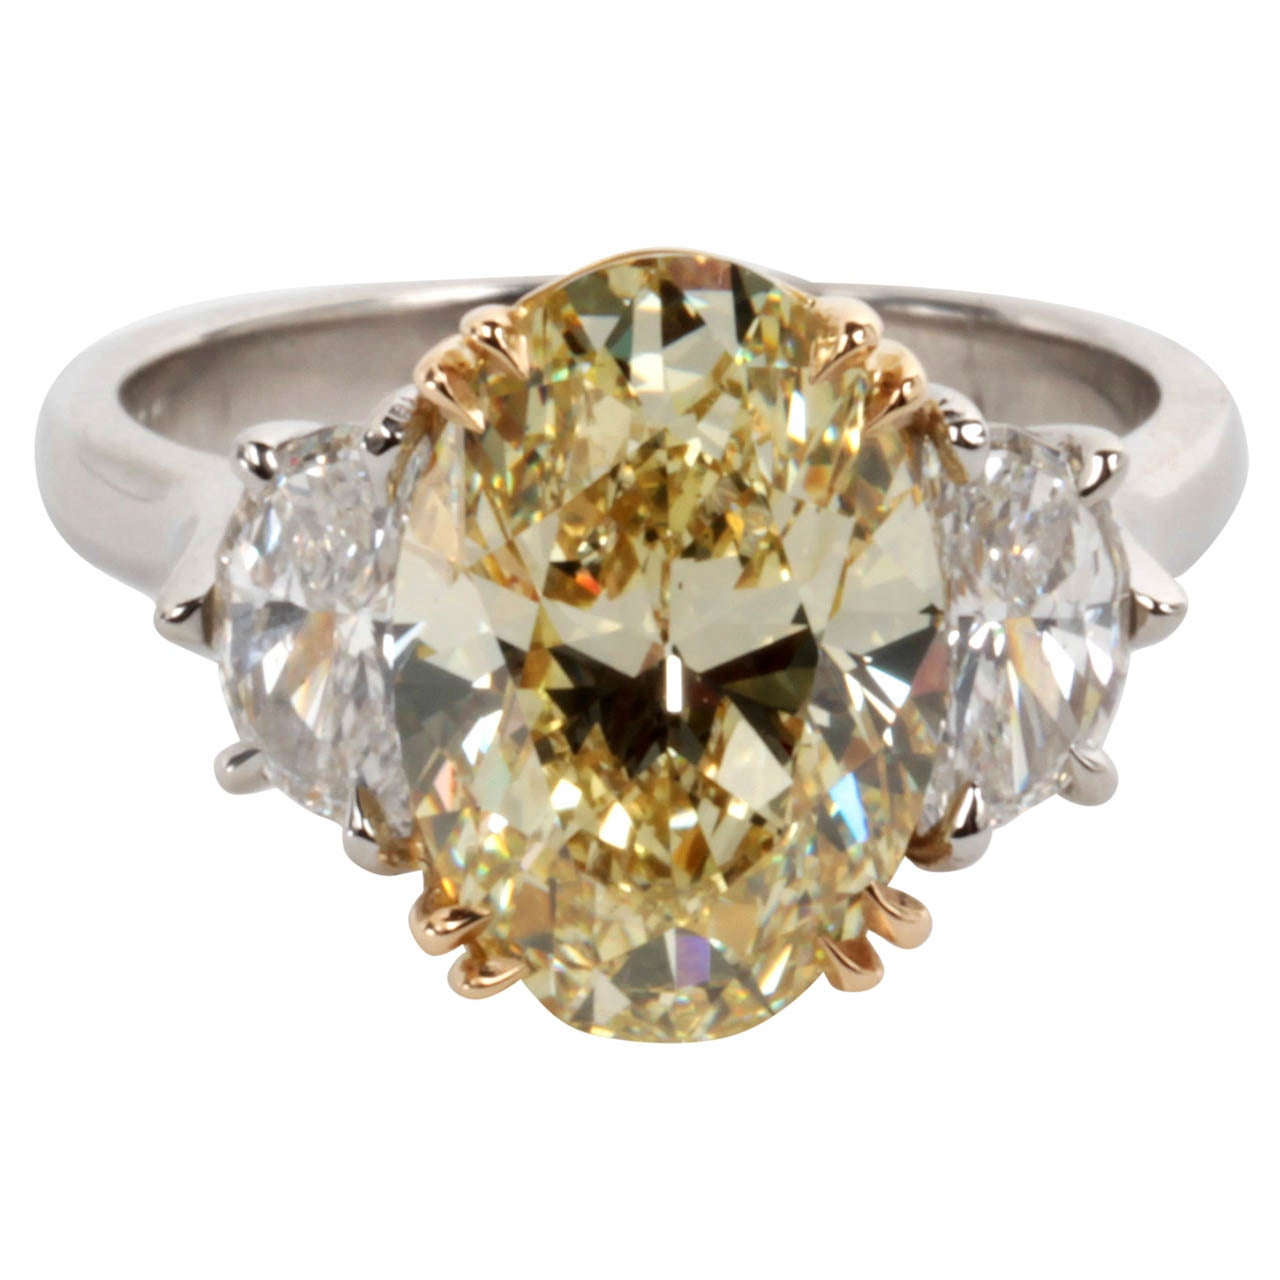 GIA Certified Oval Brilliant Fancy Yellow VS1 Diamond Ring